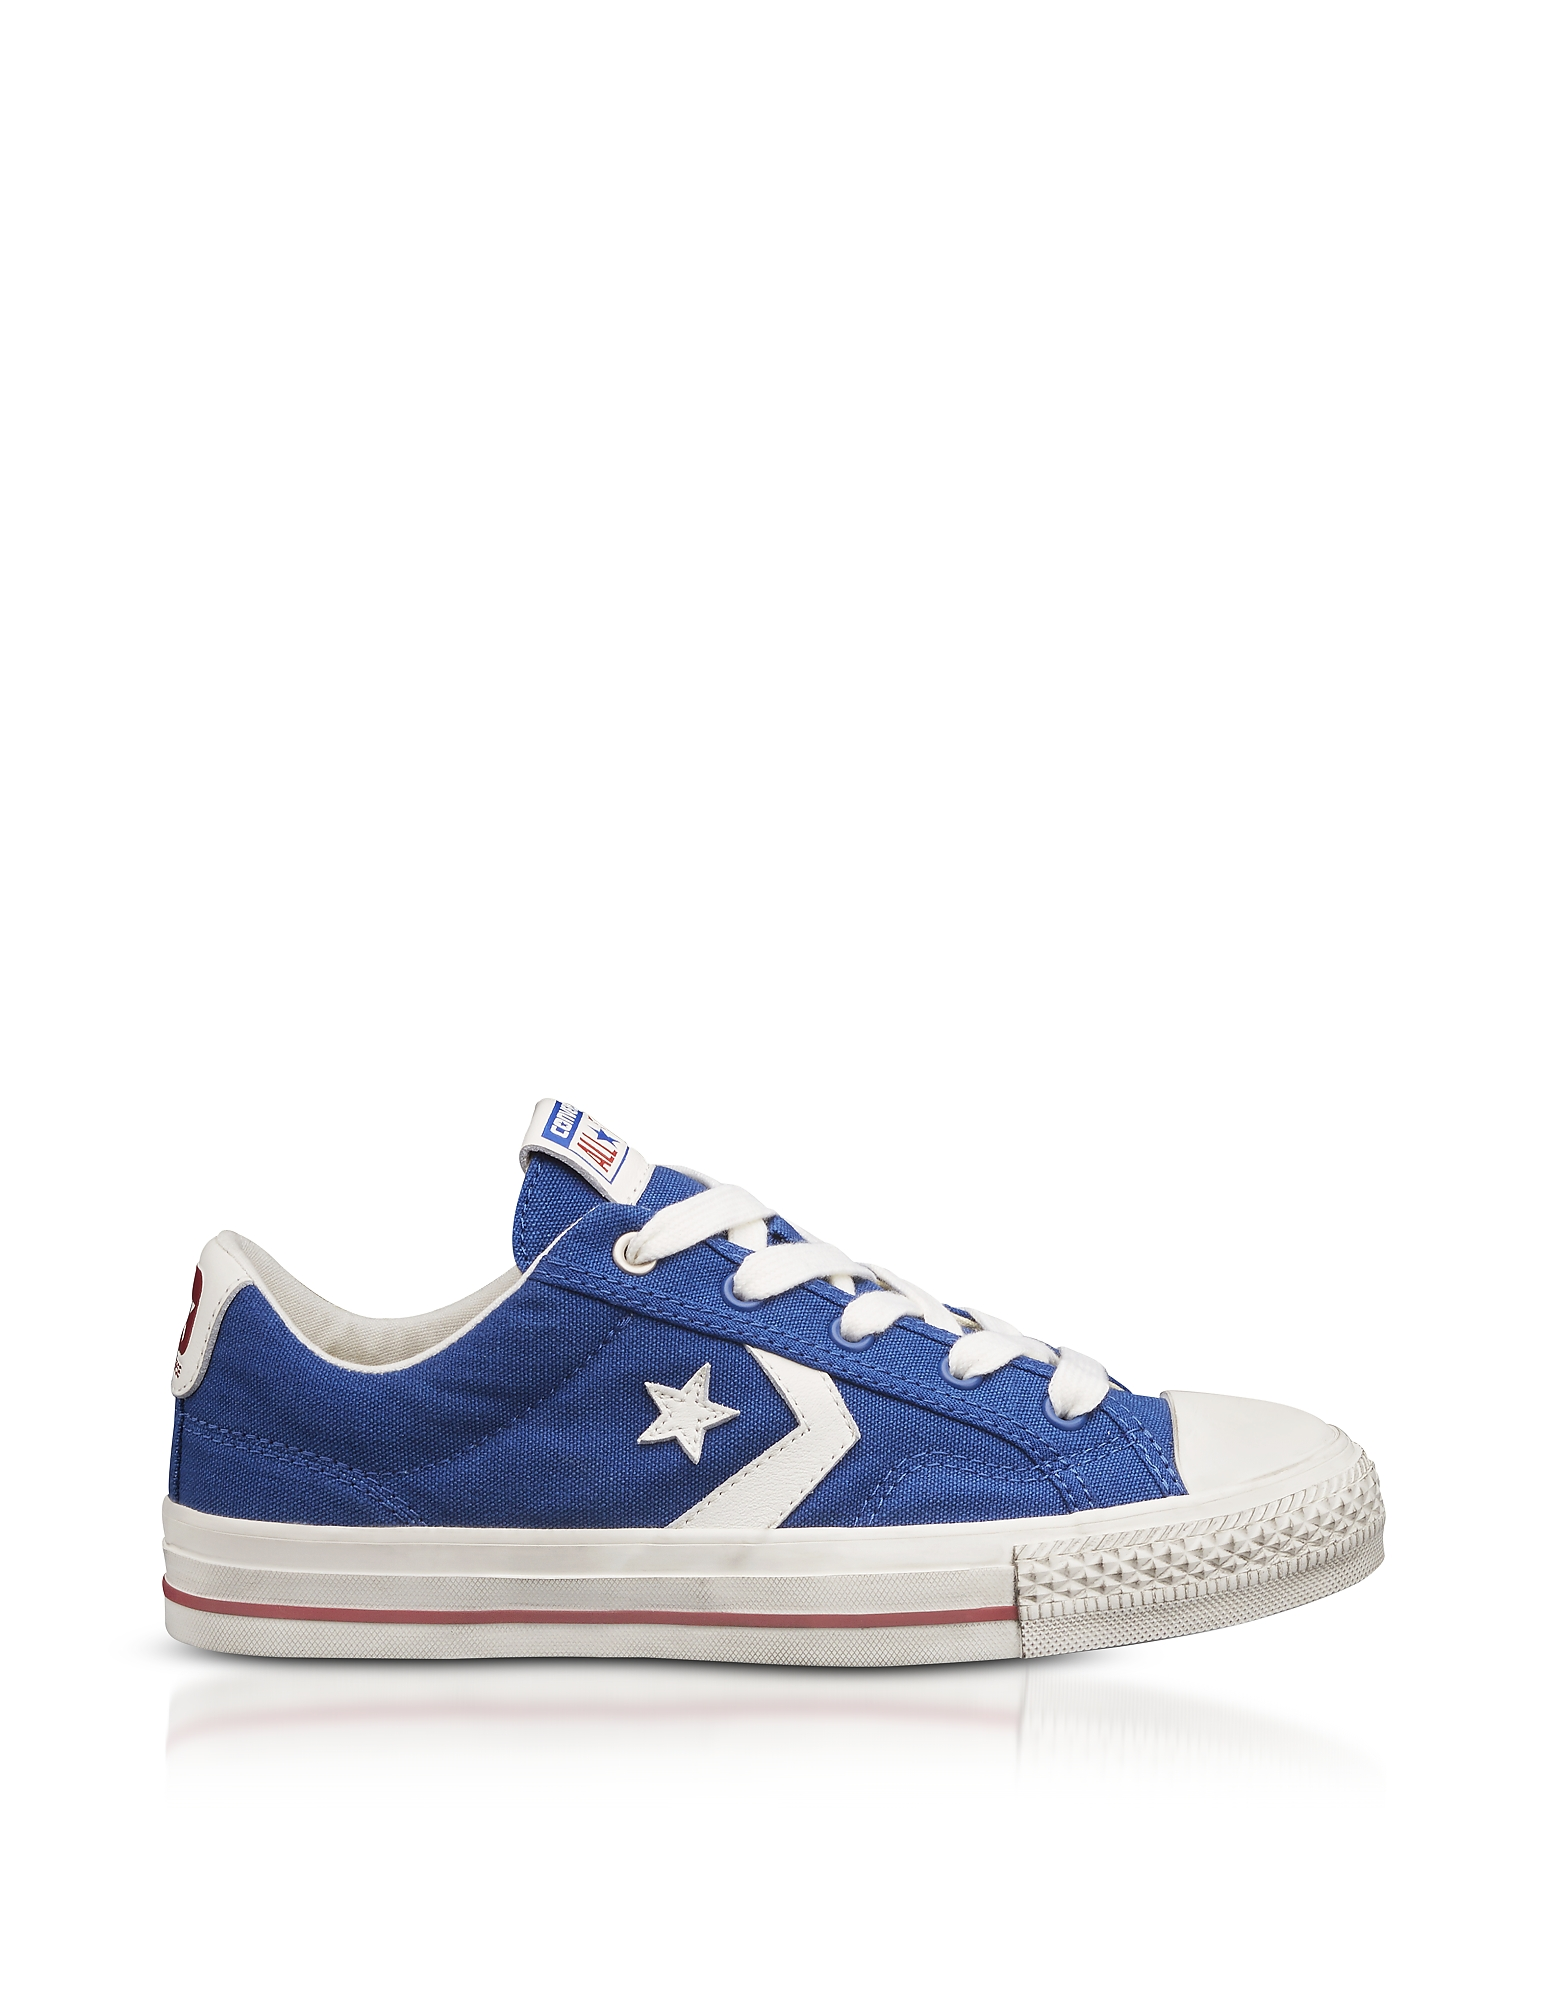 Converse Limited Edition Shoes, Blue Star Player Distressed Ox Canvas Men's Sneakers